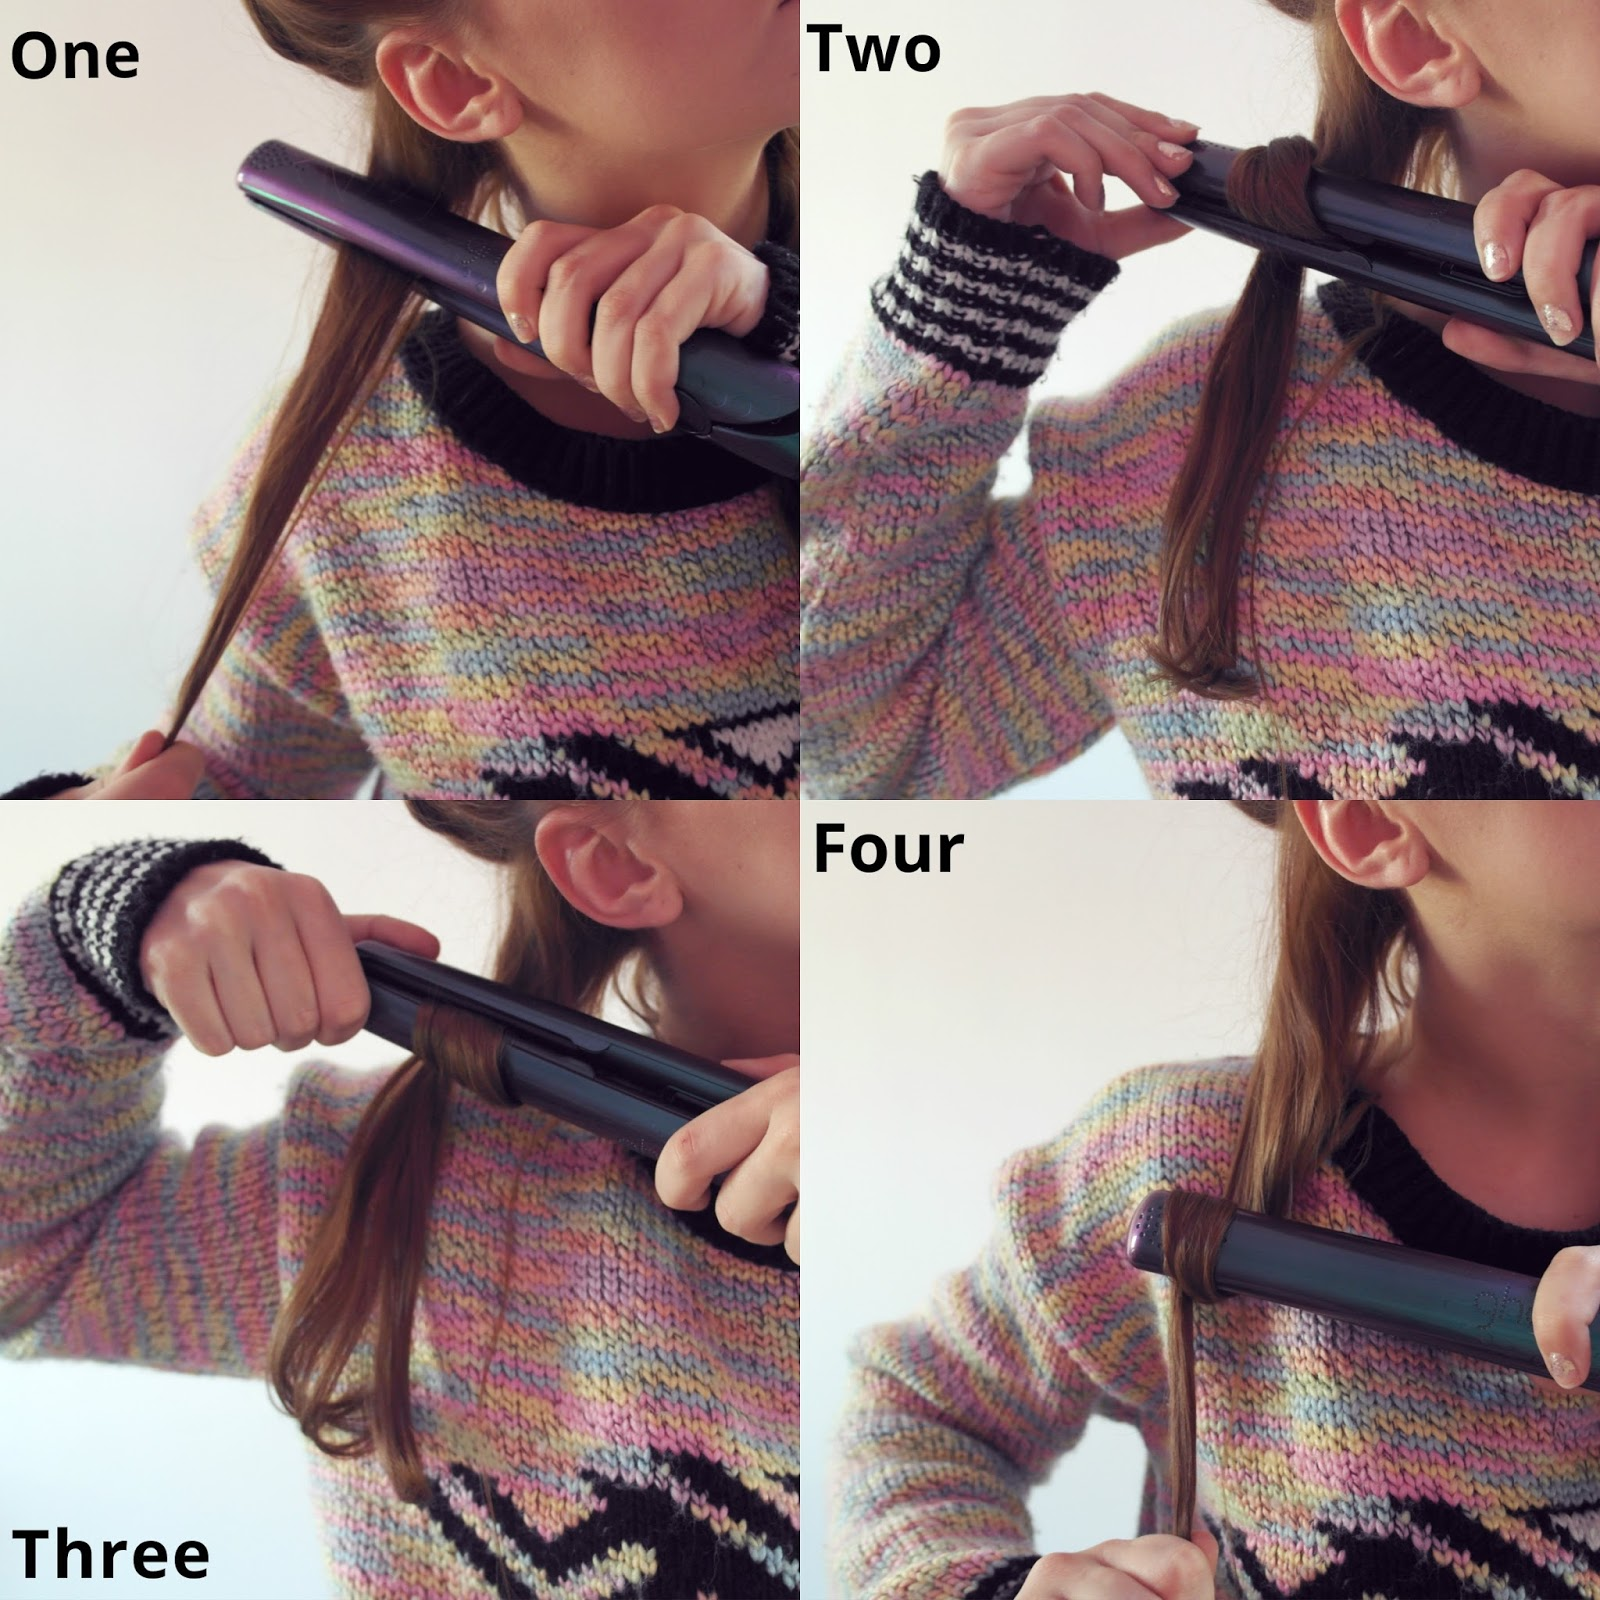 How do you curl your hair with ghd straighteners